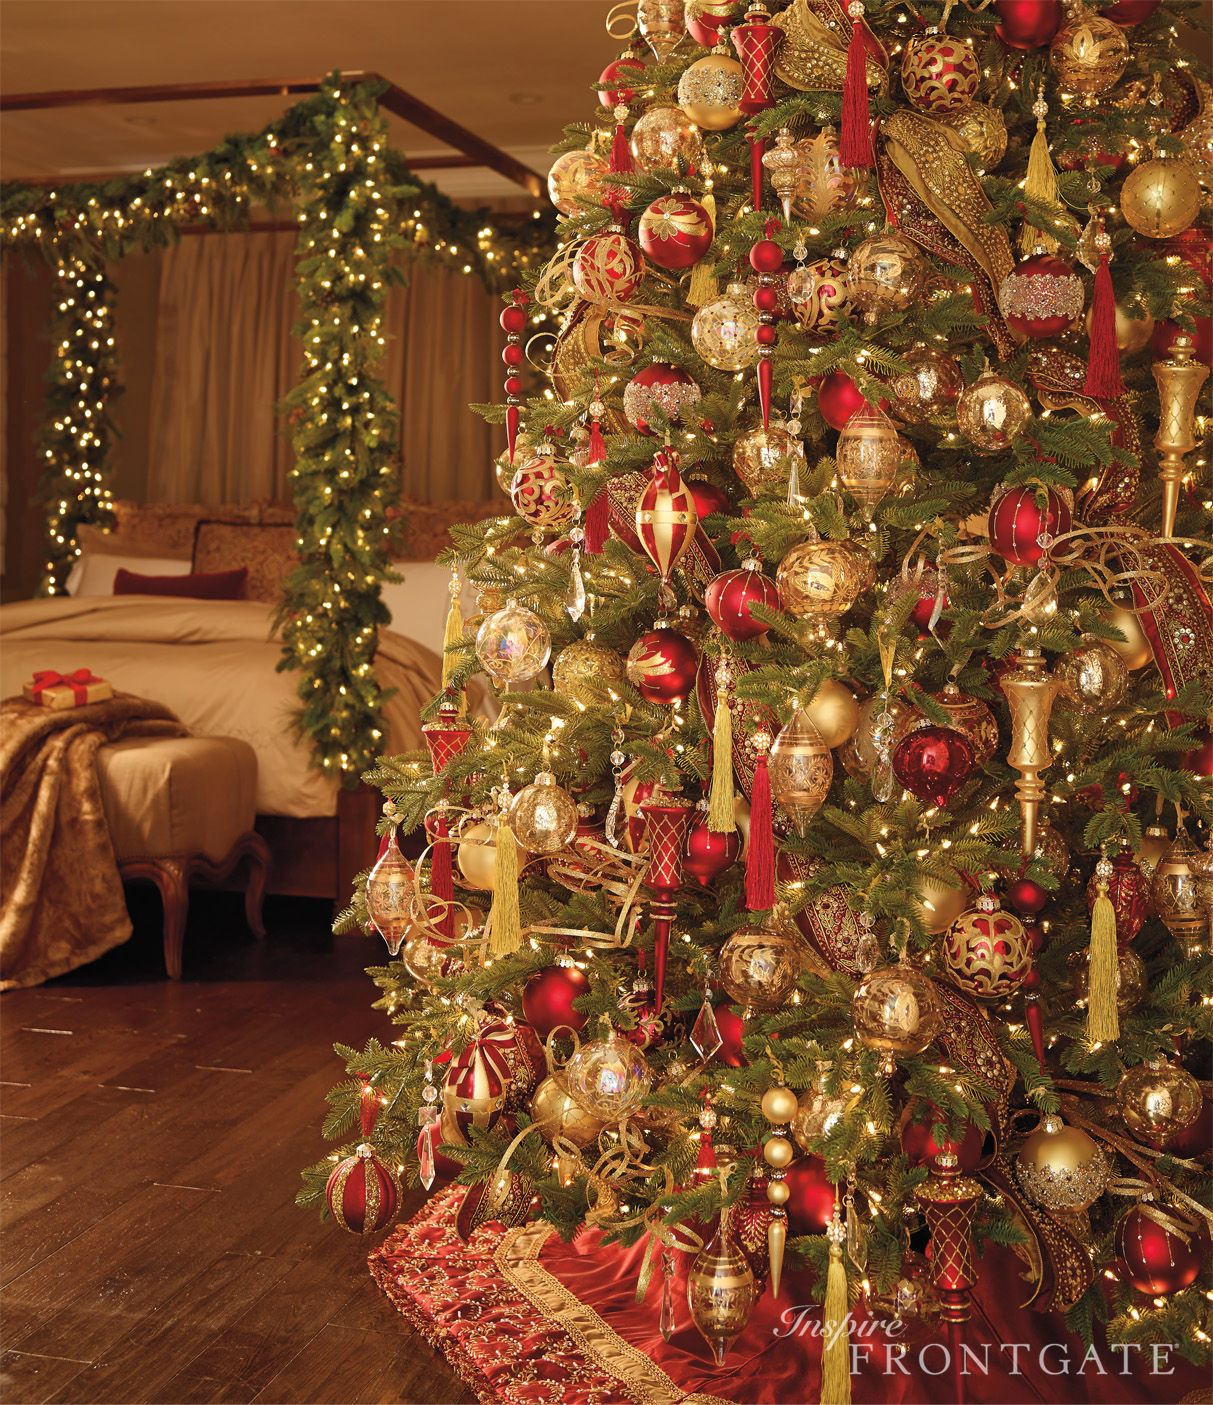 Where Did The Christmas Tree Tradition Originate: Who Doesn't Want Christmas In Their Bedroom? I Mean, Come